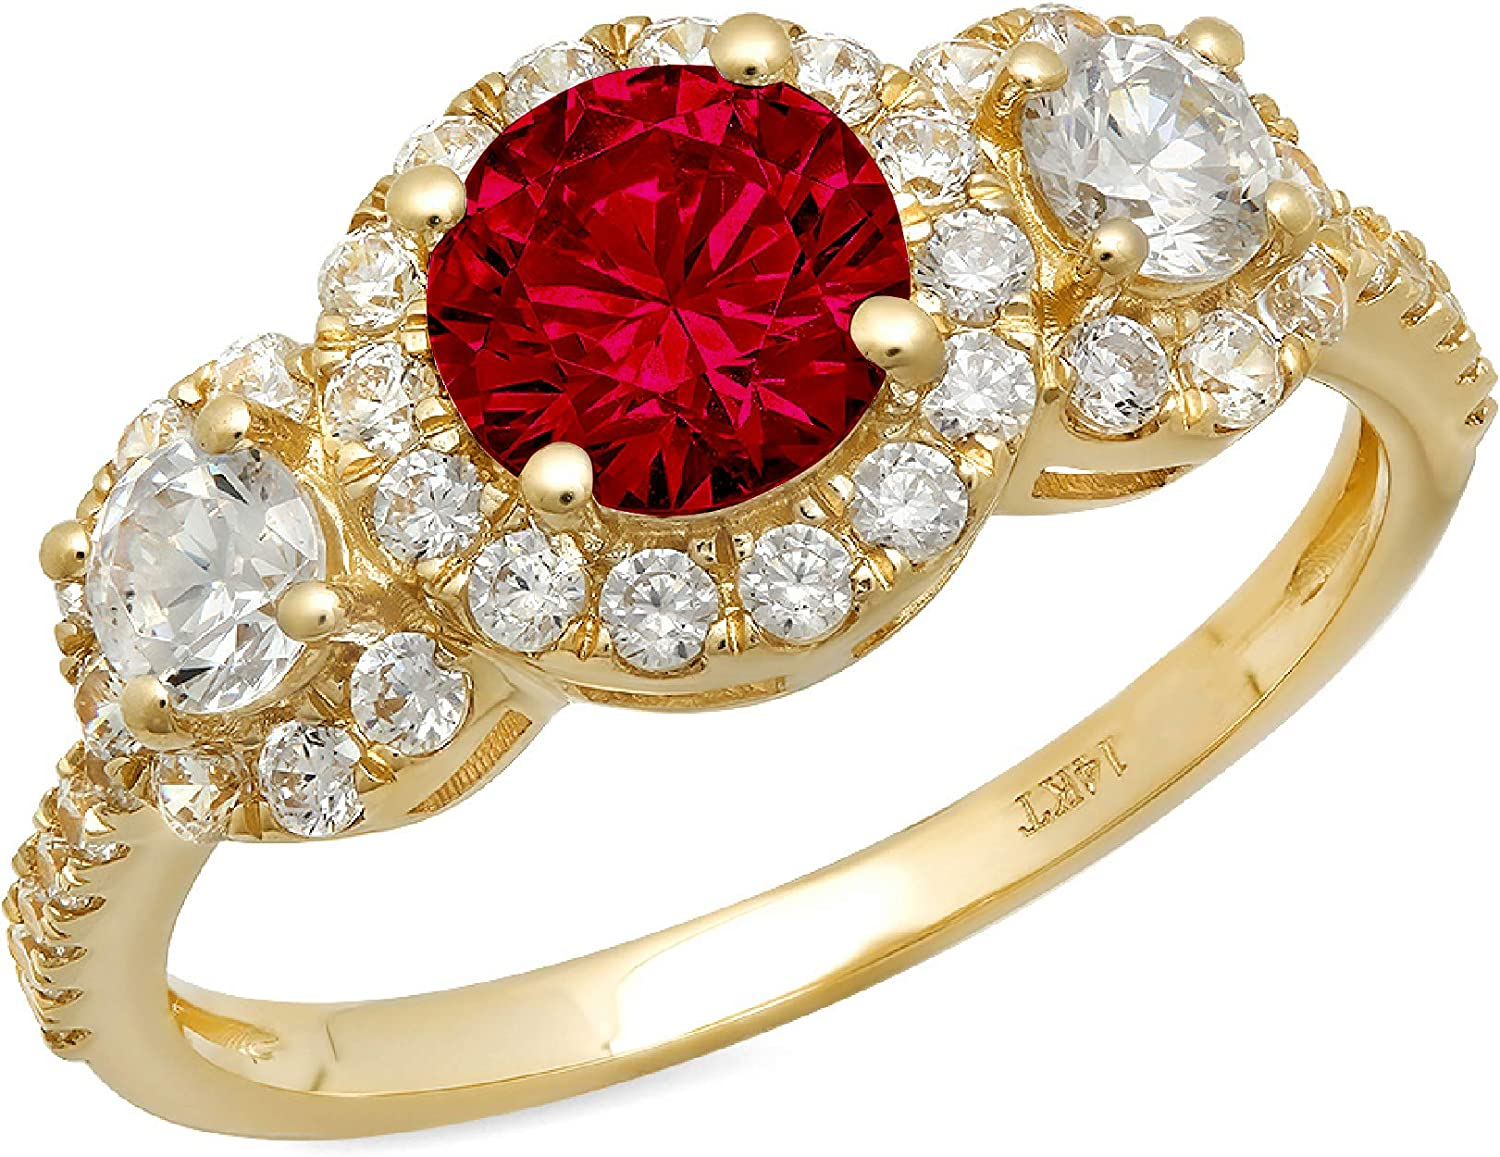 1.69ct Round Cut Halo Solitaire 3 stone With Accent Natural Crimson Deep Red Garnet Gemstone Ideal VVS1 Engagement Promise Statement Anniversary Bridal Wedding ring Solid 14k Yellow Gold